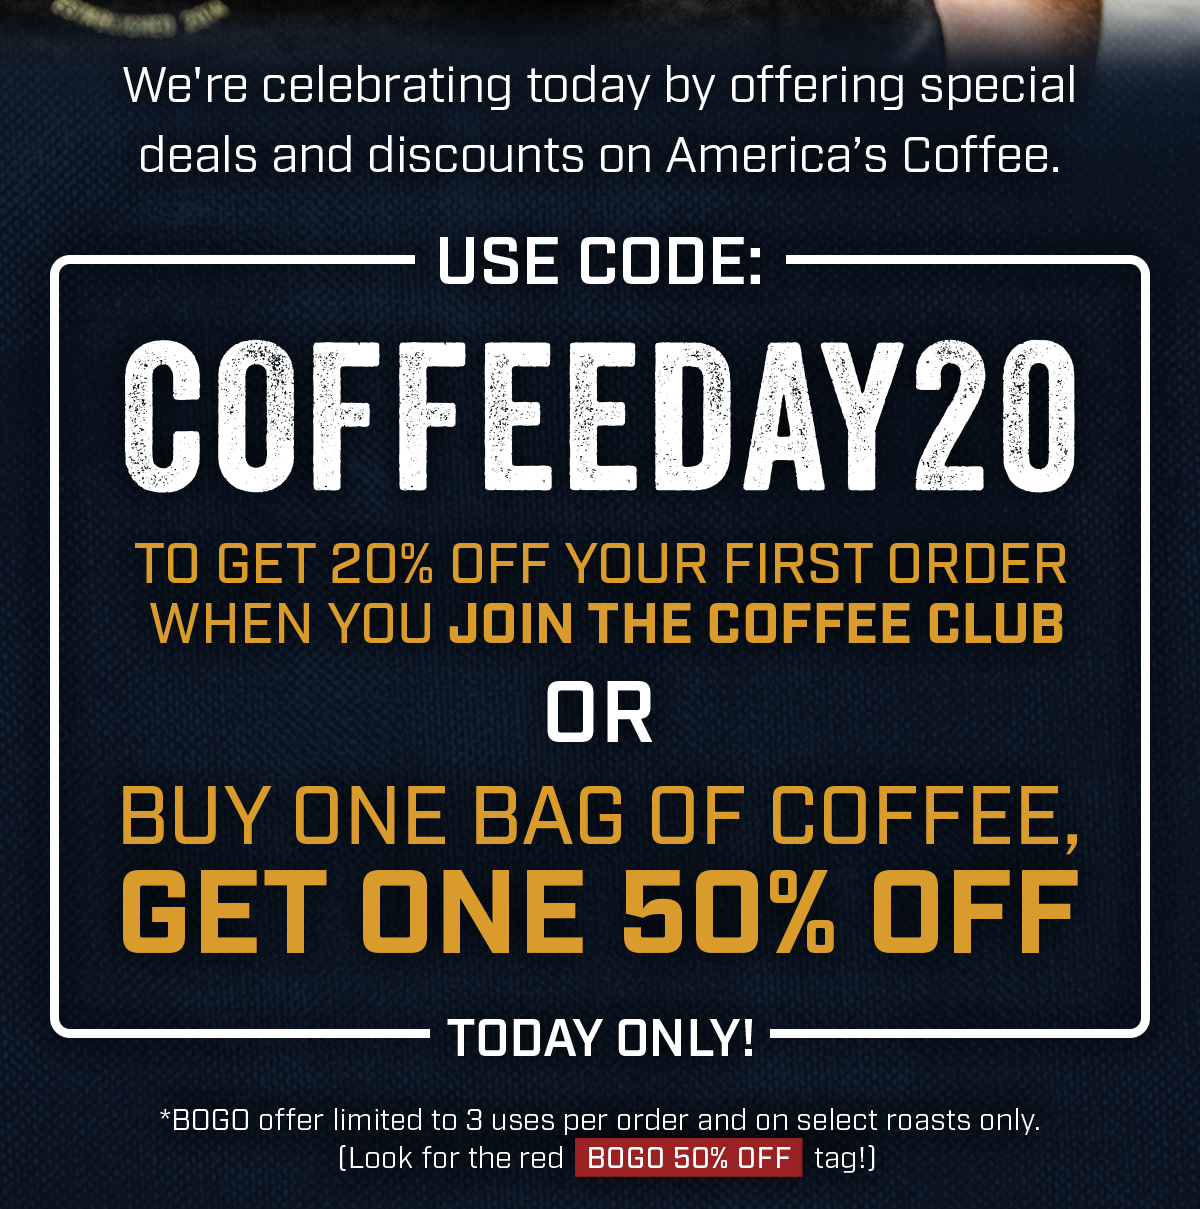 Use Code: Coffeeday20